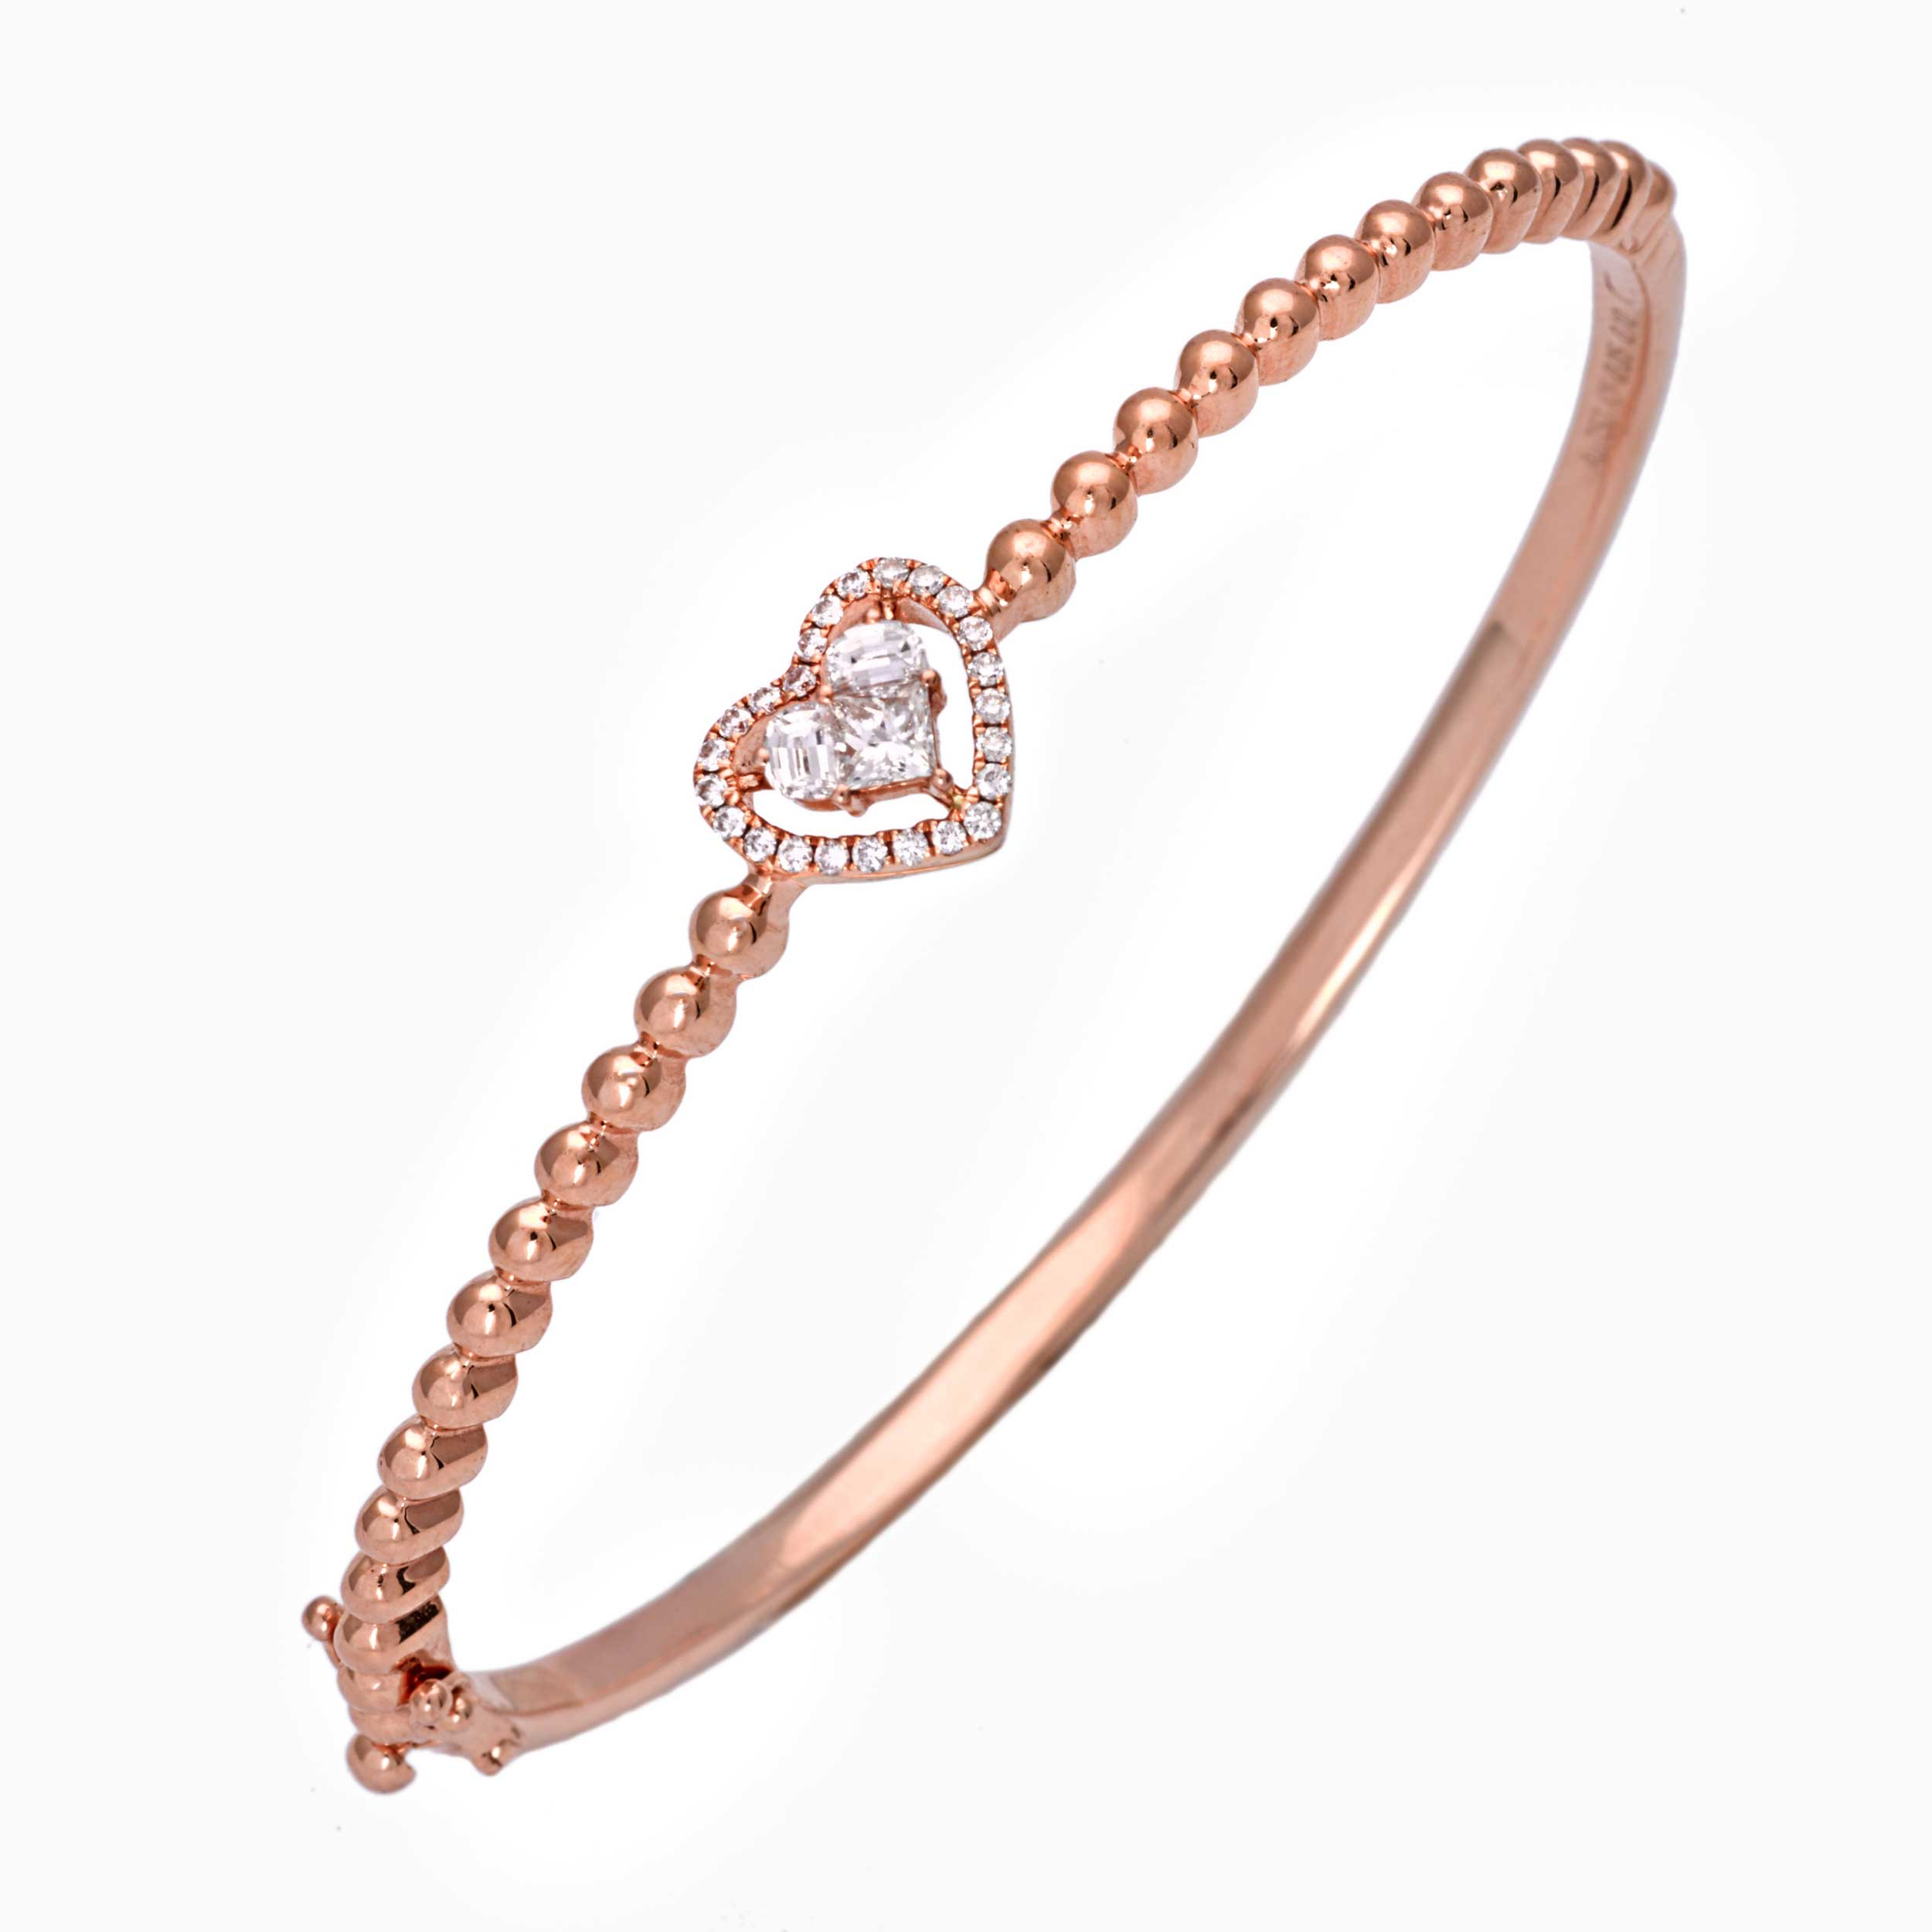 2 Hearts Spiral Hoop Bangle in 18k white gold (Copy)